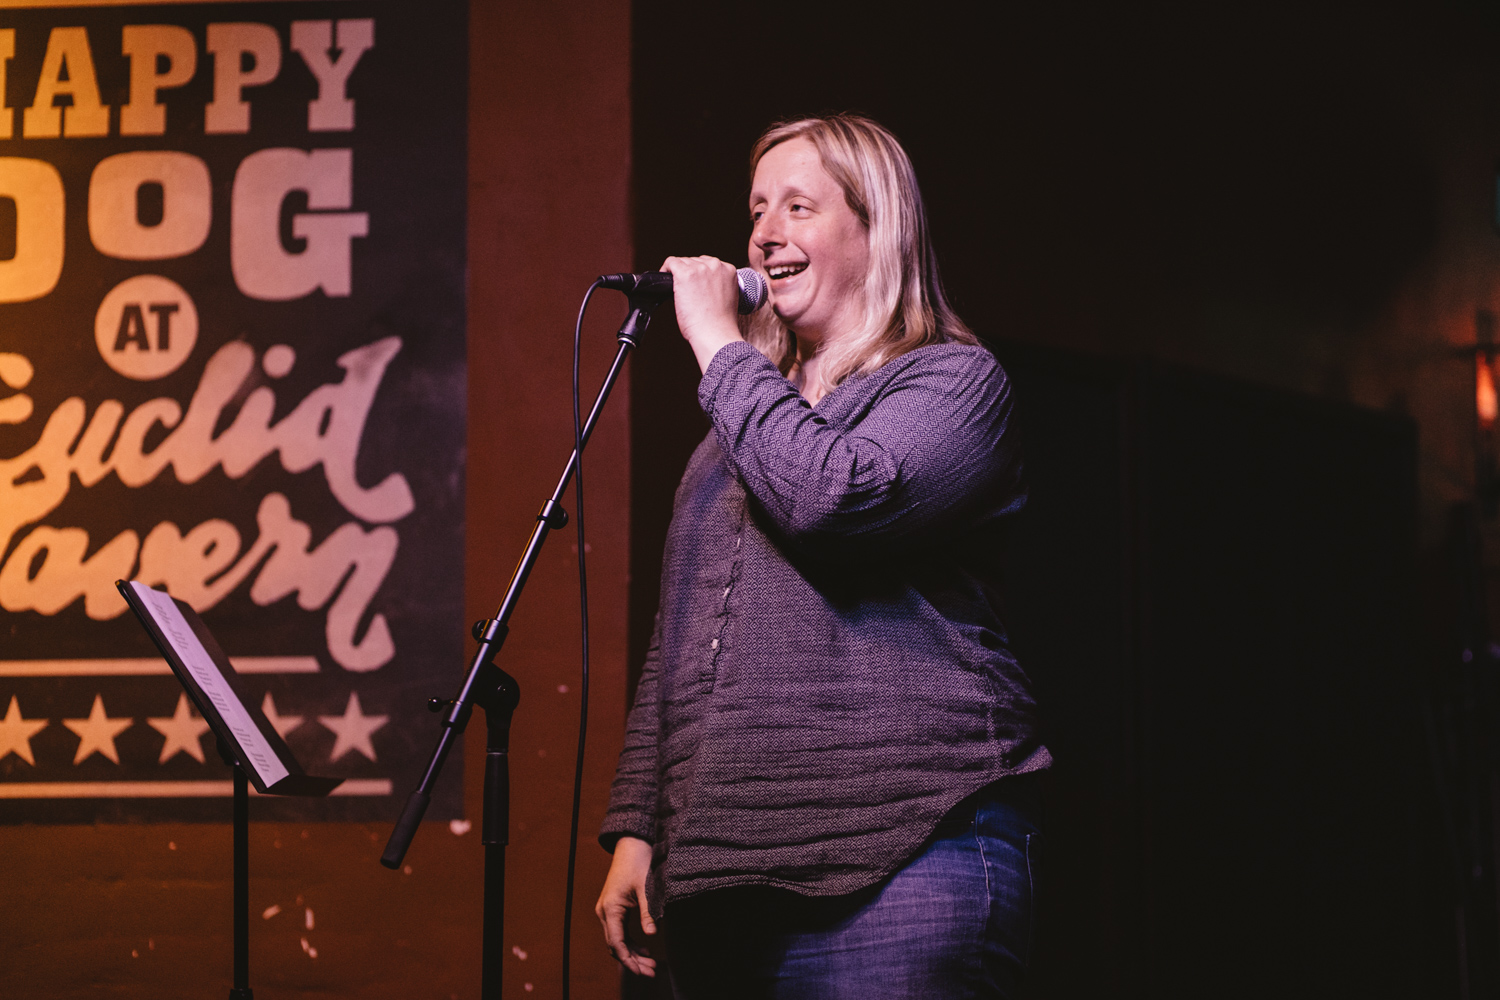 A woman smiles as she tells a story on stage at the Happy Dog in Cleveland